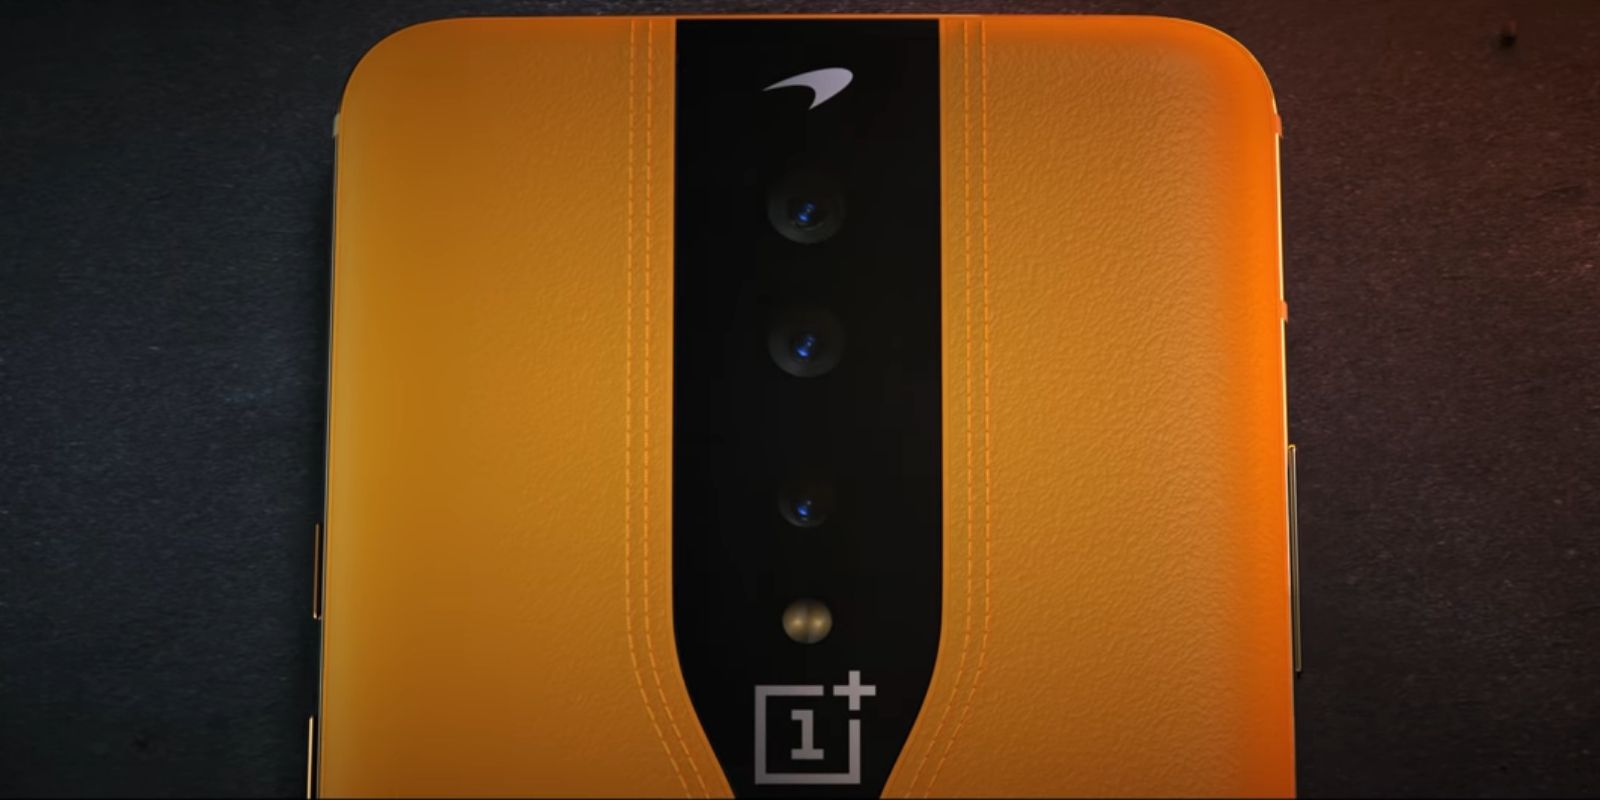 OnePlus Concept One phone rear cameras with leather build